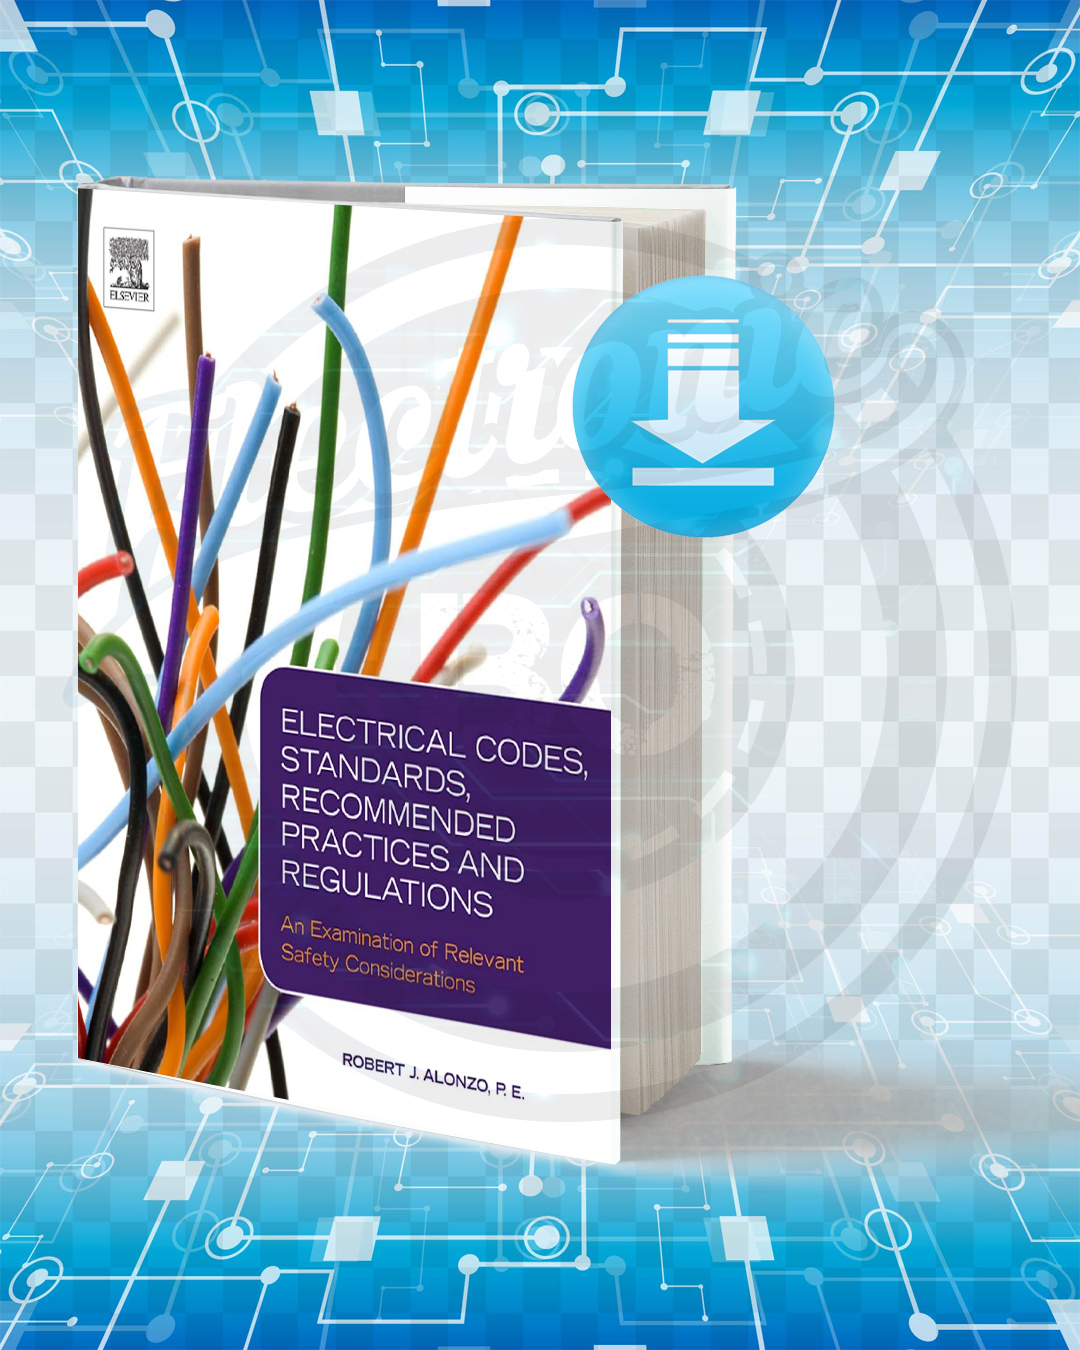 Free Book Electrical Codes Standards Recommended Practices and Regulations An Examination of Relevant Safety Considerations pdf.